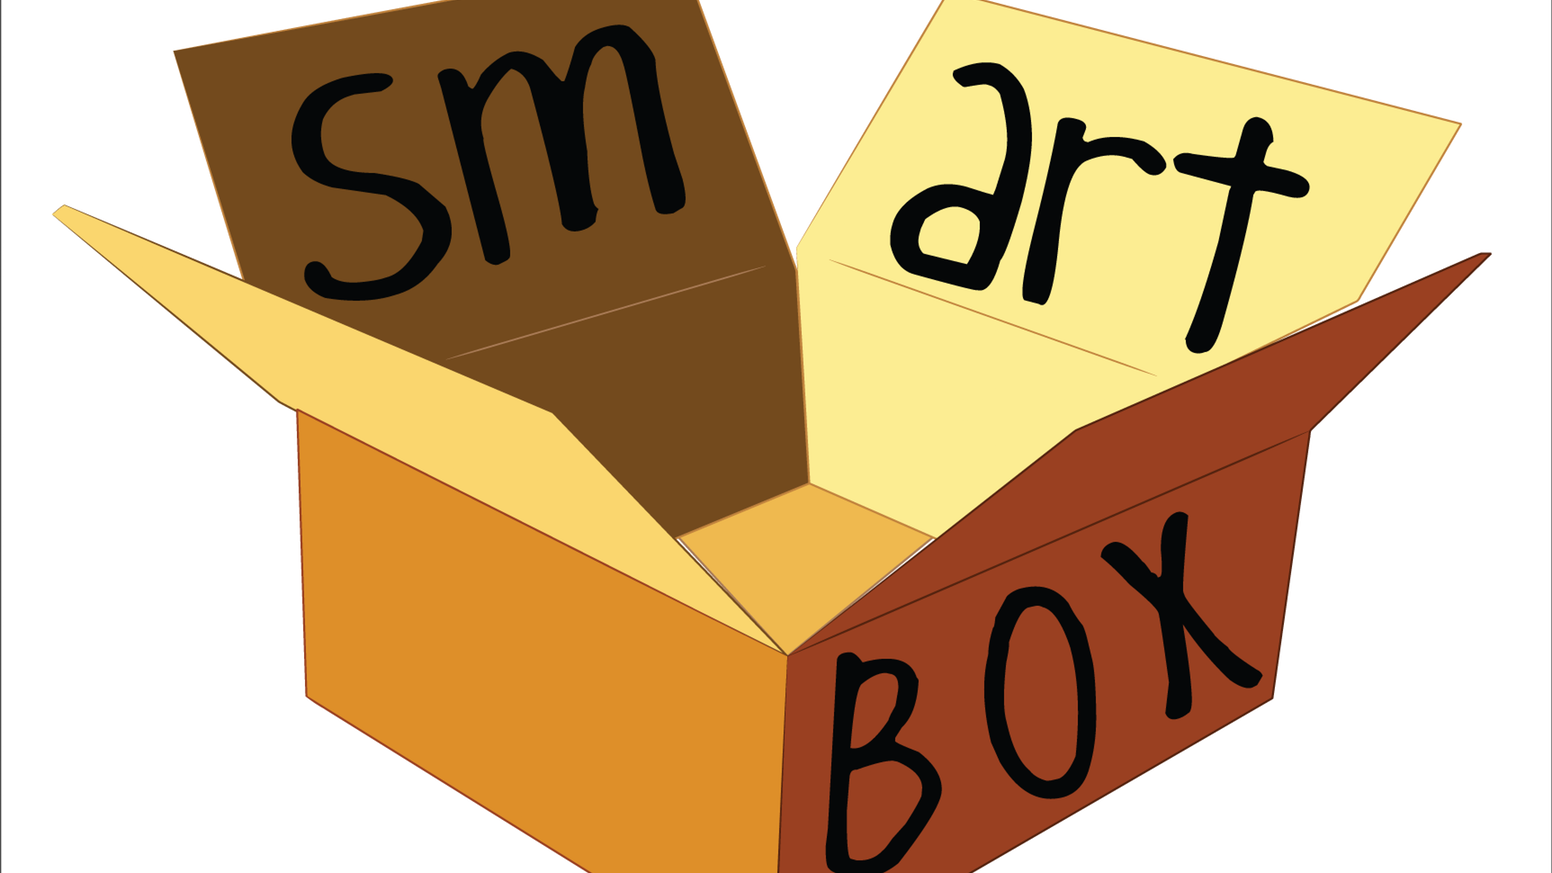 Original clipart art education Presents for Box: Education Tooth